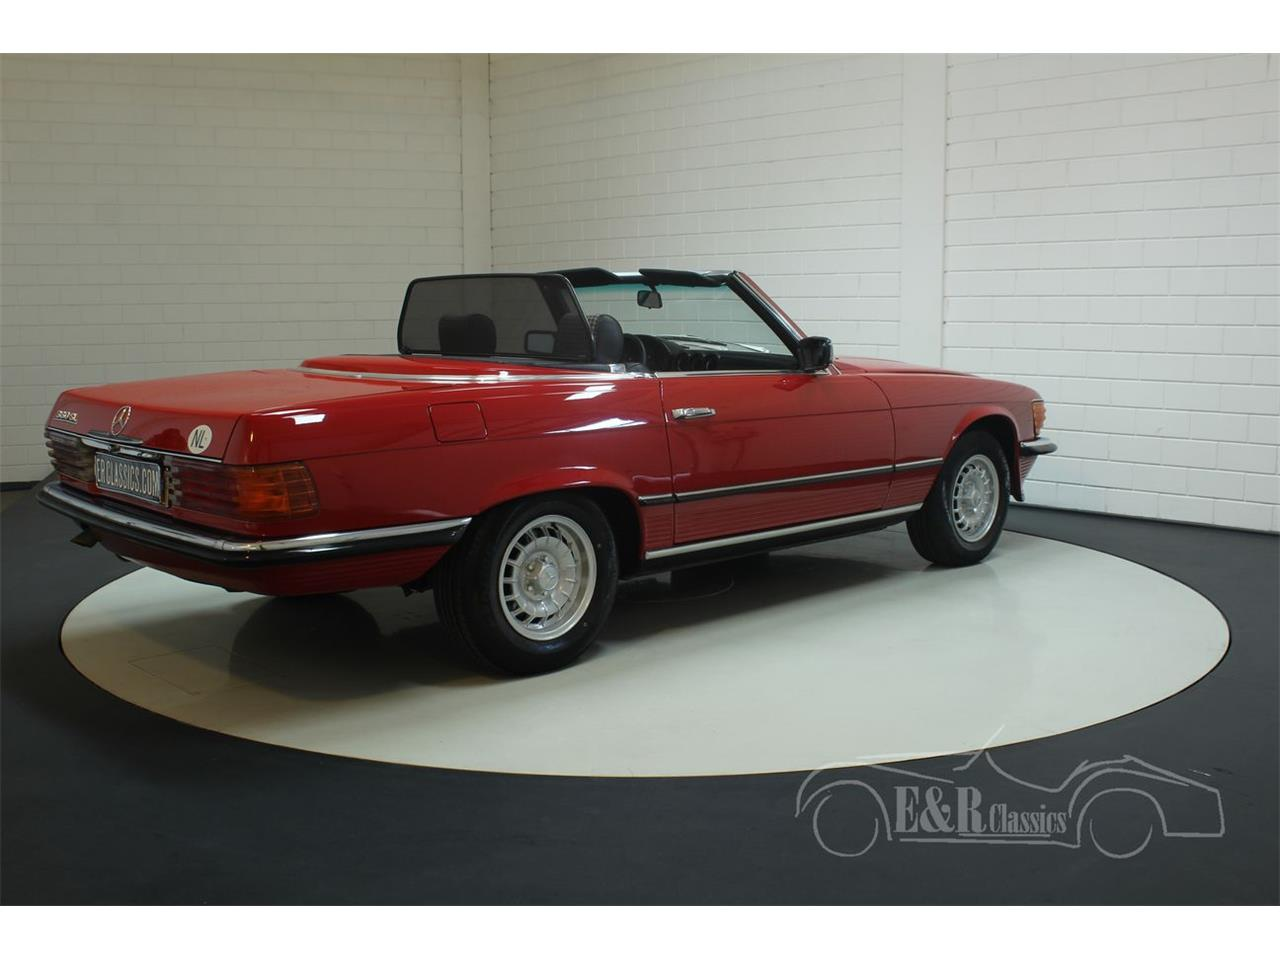 Large Picture of 1985 Mercedes-Benz 380SL located in Noord-Brabant - $38,550.00 - R1DJ